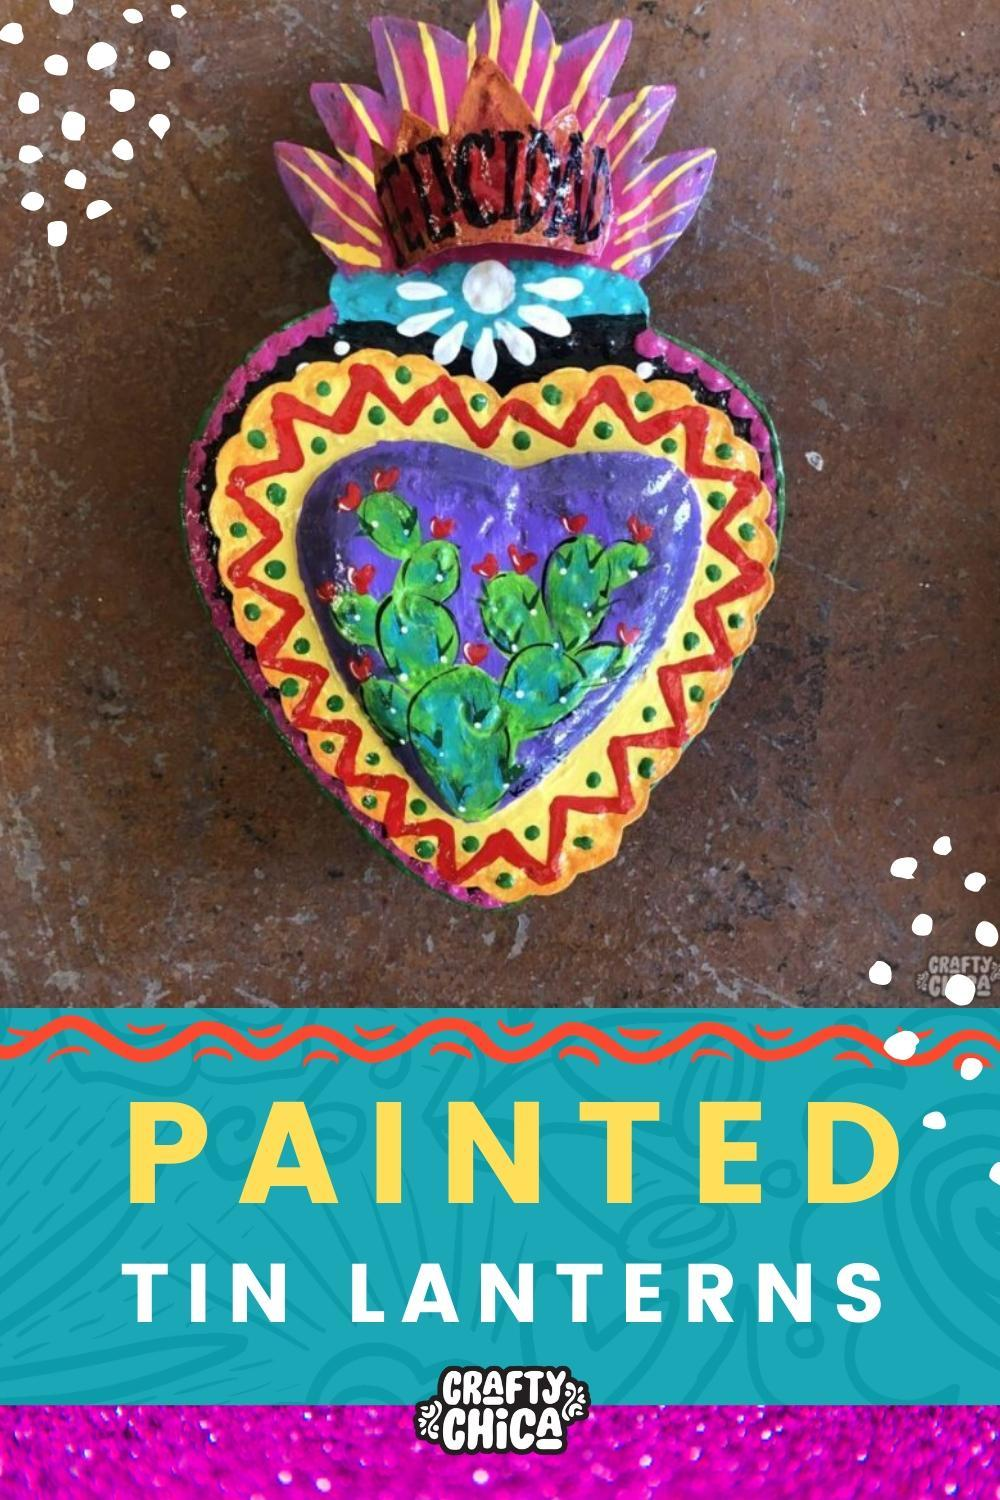 How to paint tin lanterns #craftychica #paintedtin